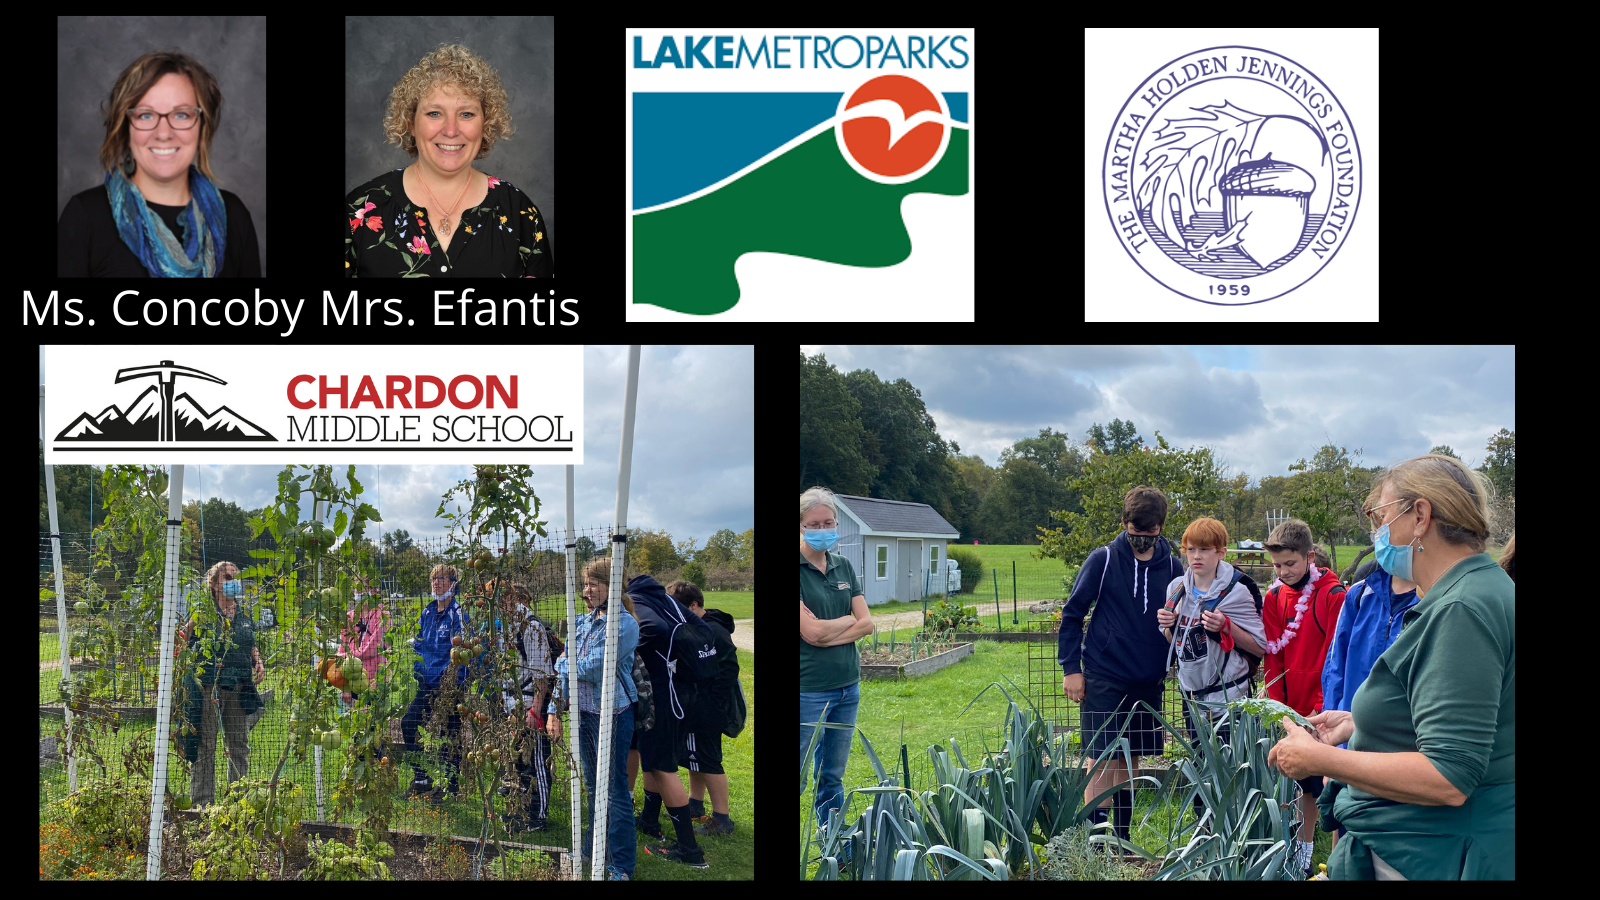 collage graphic:  staff photos of Ms. Concoby (Bus Driver) and Mrs. Efantis (CMS Science Teacher/AHLI Advisor) - both credit to Pastor Photography; Lake Metroparks Farmpark logo; Martha Holden Jennings Foundation logo; Chardon Middle School mountain axe logo; and 2 action photos of the field trip at the Farmpark - students and Farmpark staff members standing outside on farmland learning about gardening